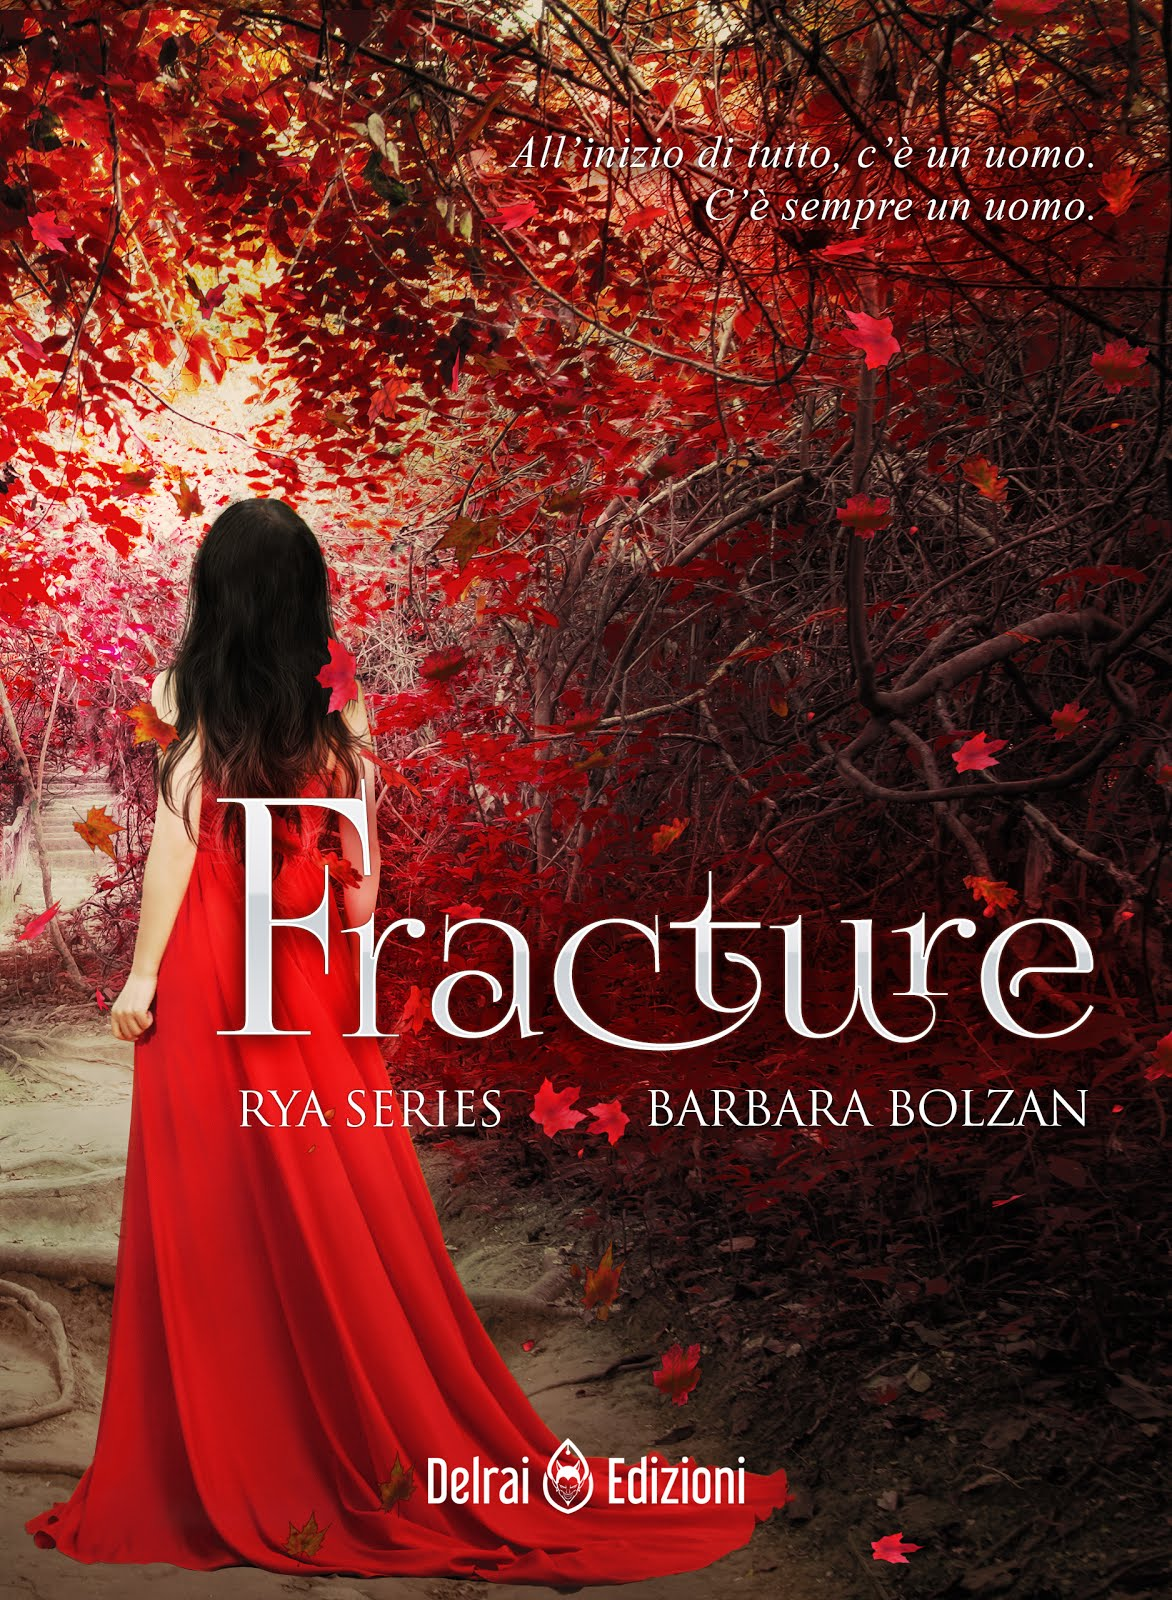 FRACTURE - Rya Series, vol.I